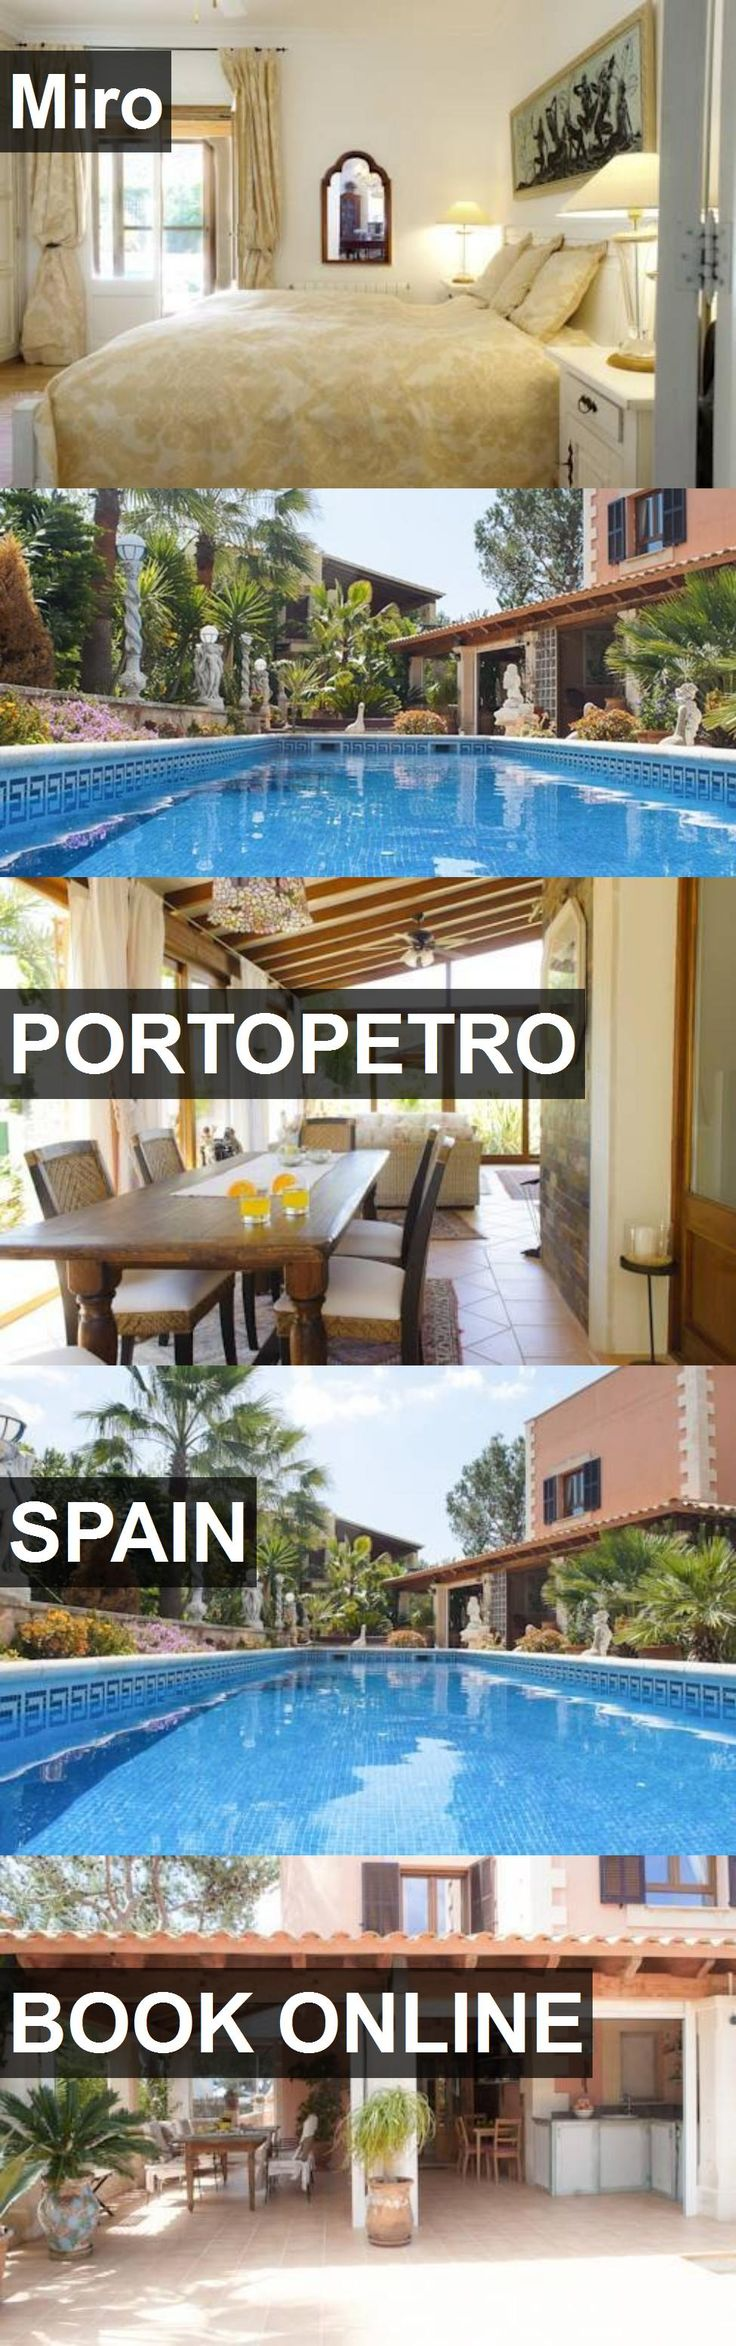 Hotel Miro in Portopetro, Spain. For more information, photos, reviews and best prices please follow the link. #Spain #Portopetro #travel #vacation #hotel